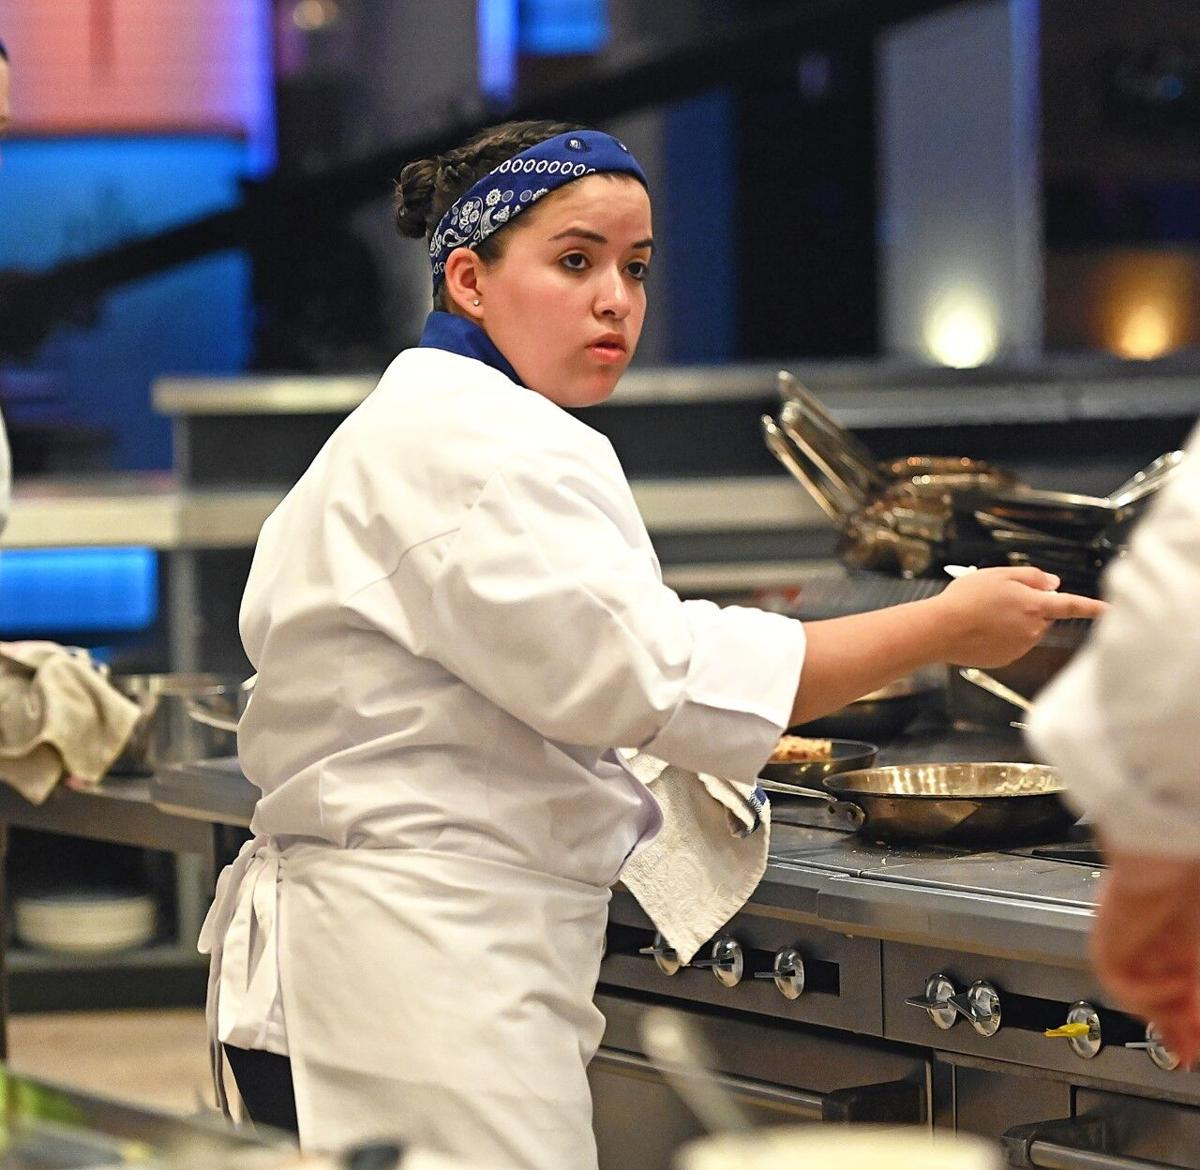 Colorado Springs can watch young chef compete on Gordon Ramsay's new reality show